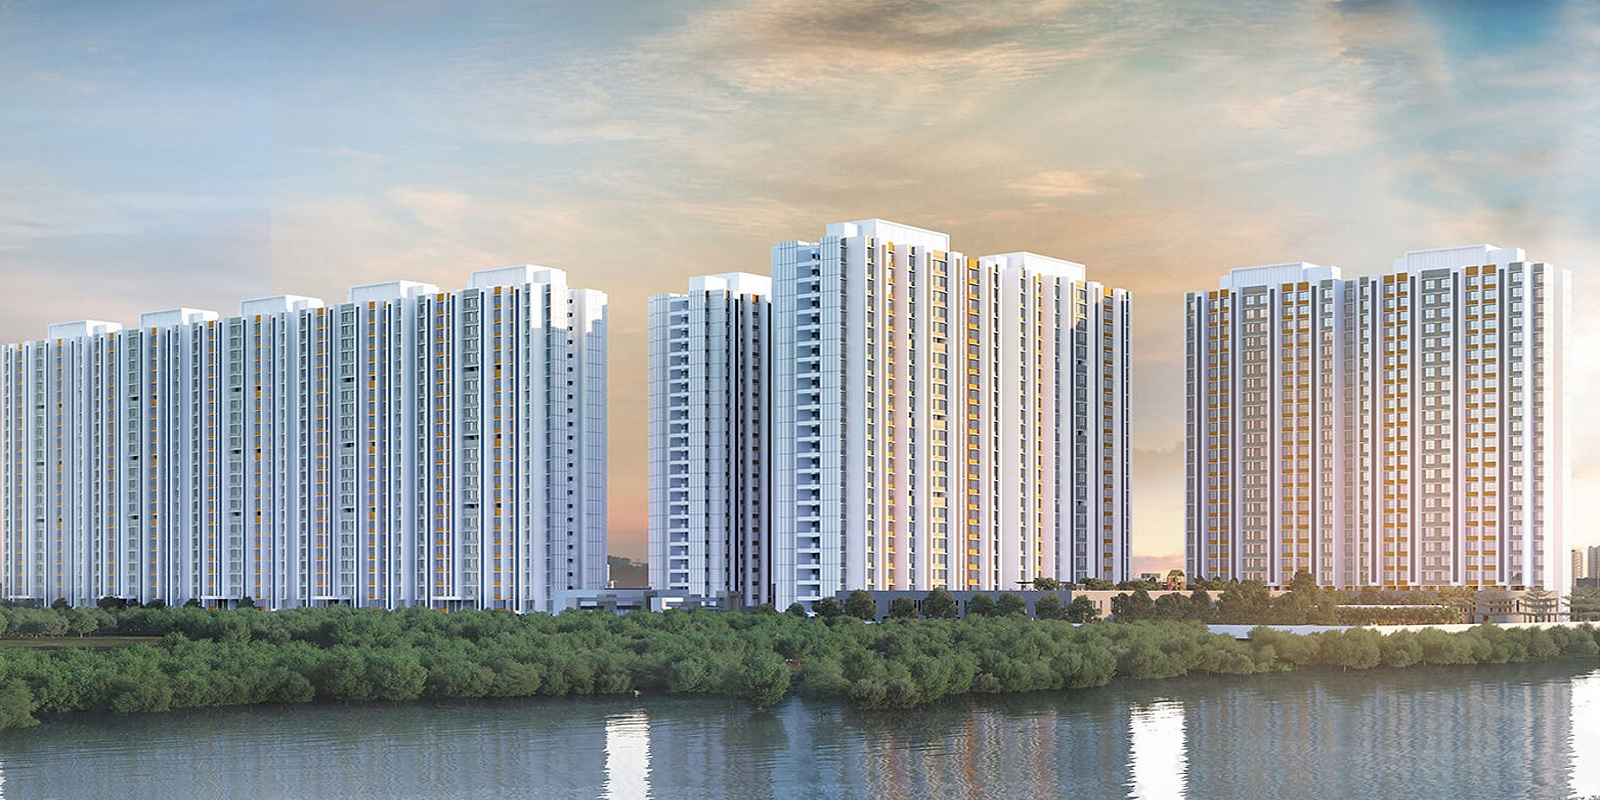 poddar riviera project project large image1